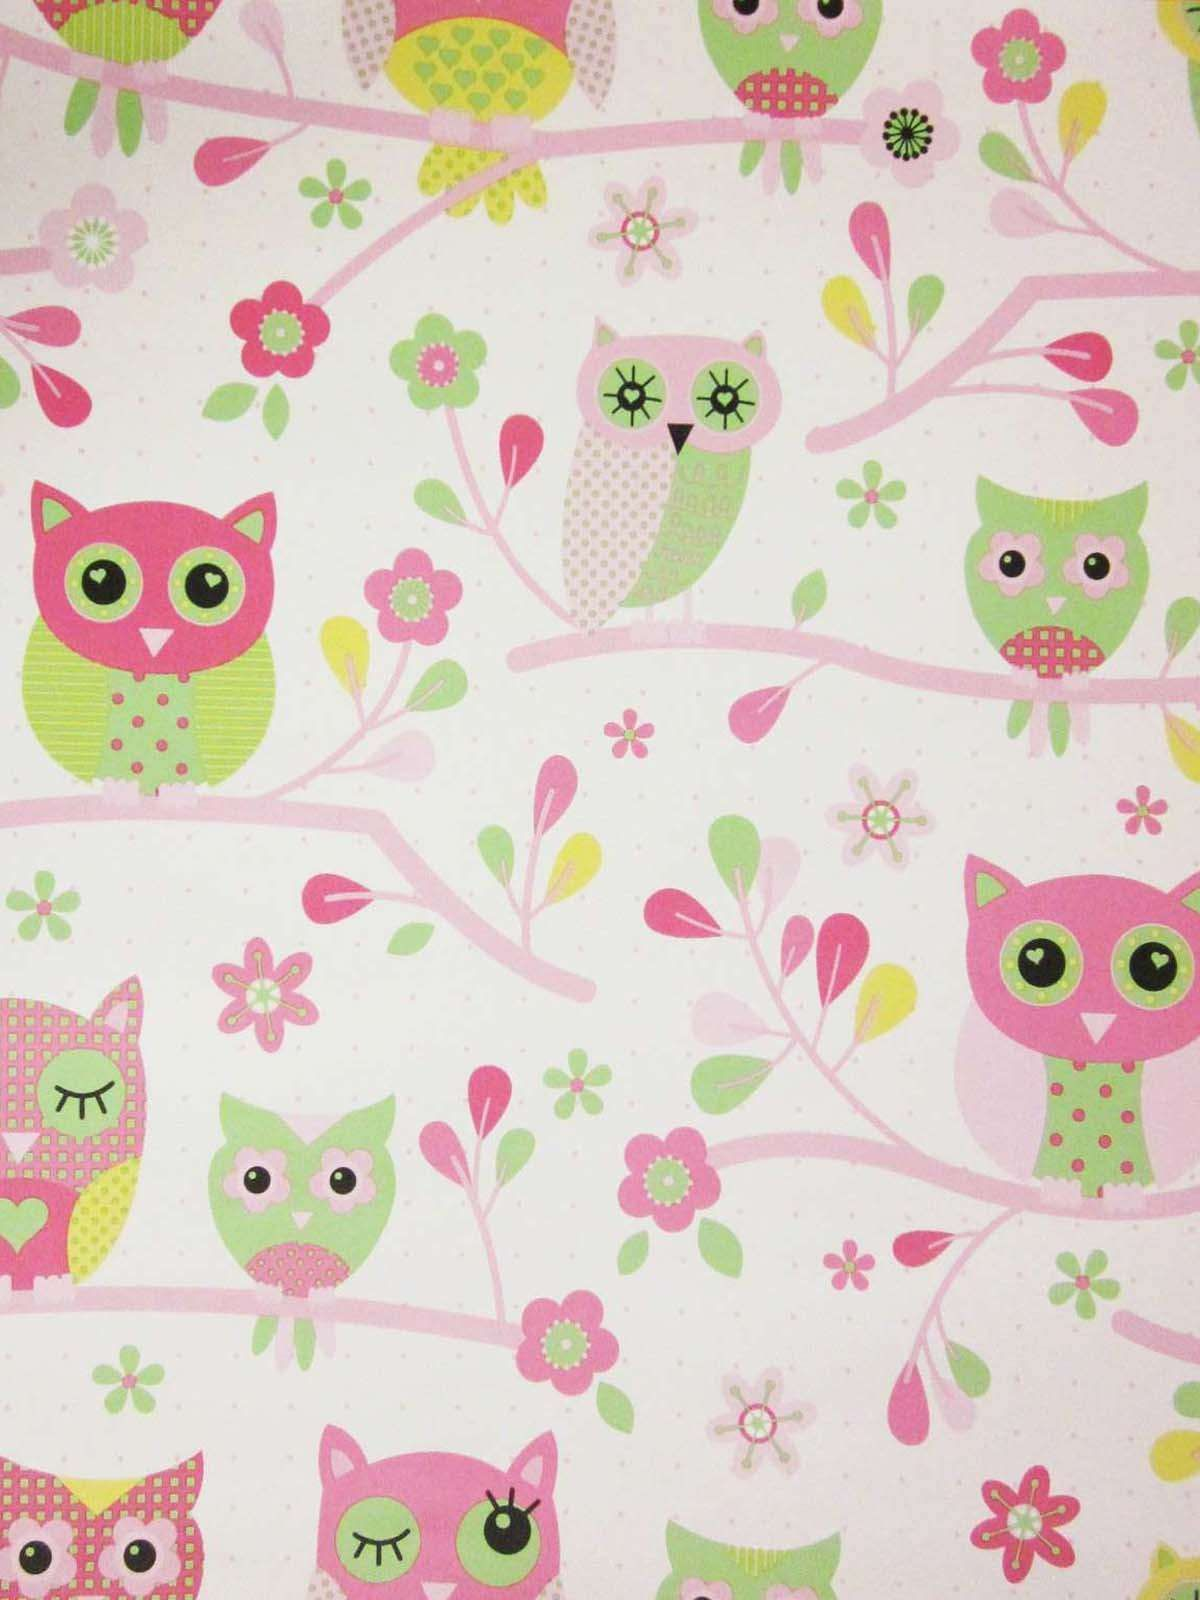 Country Owls Pink Wallpaper | Izzy's new bedroom ideas ...